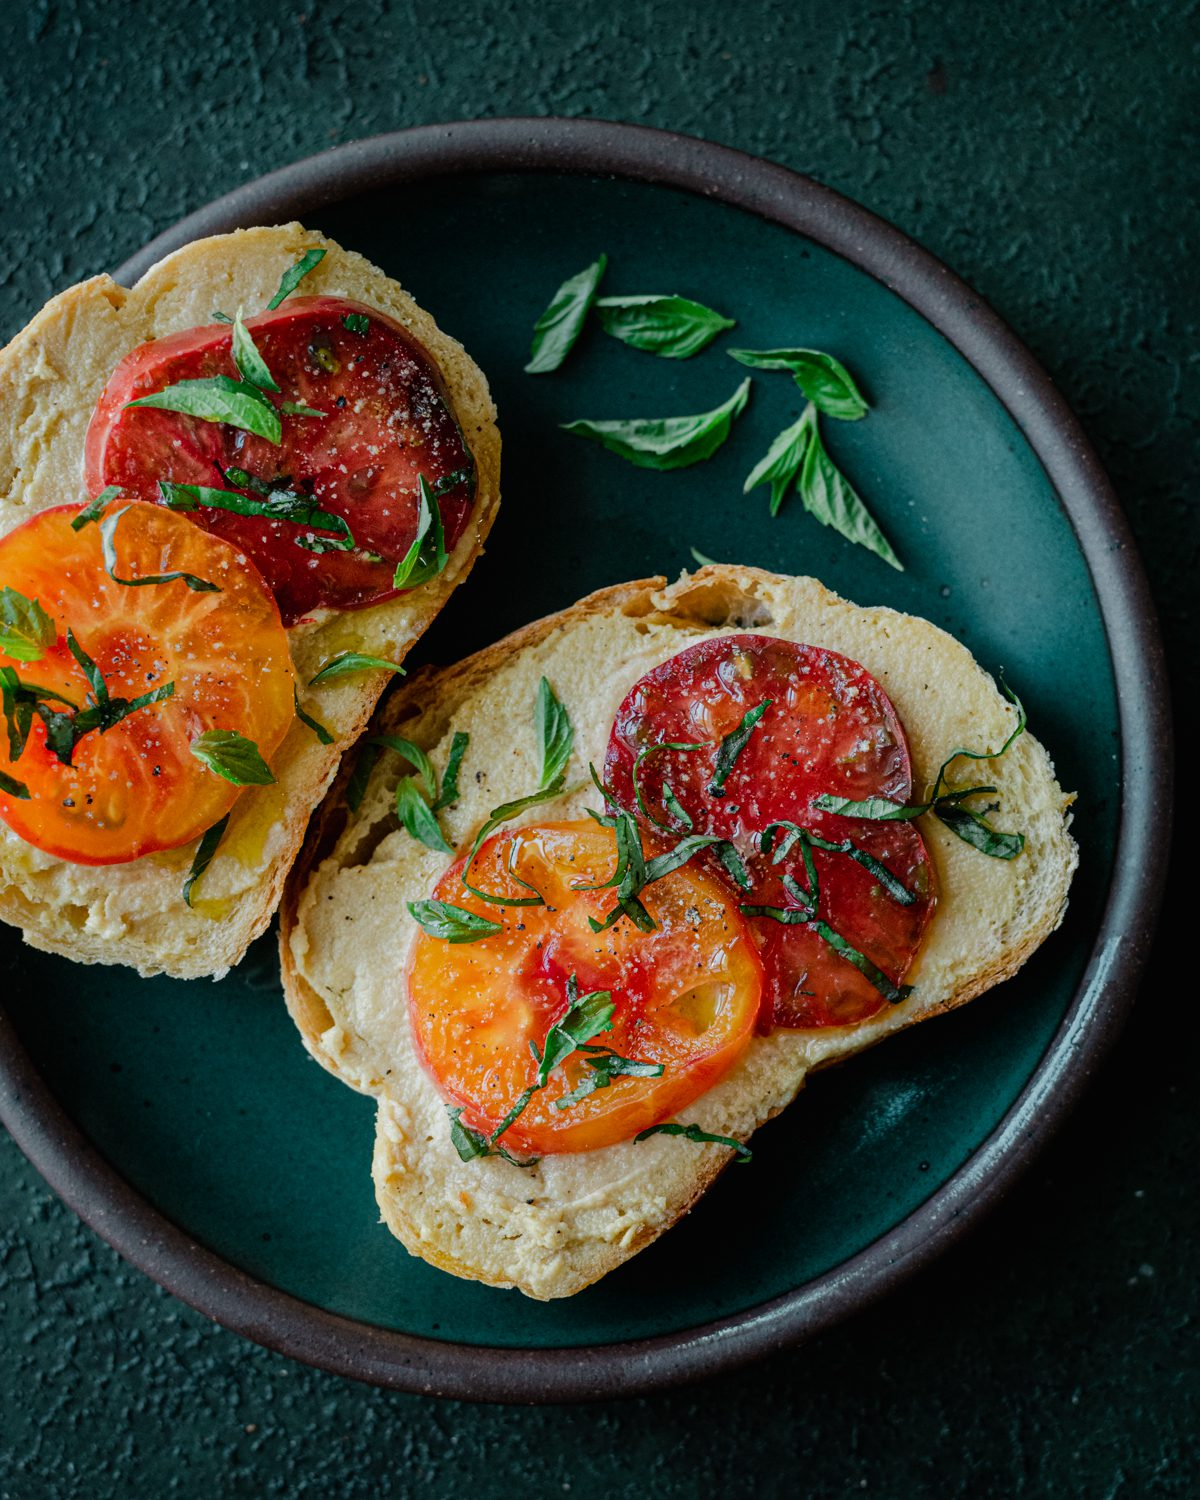 fermented cashew cheese on toast with heirloom tomatoes